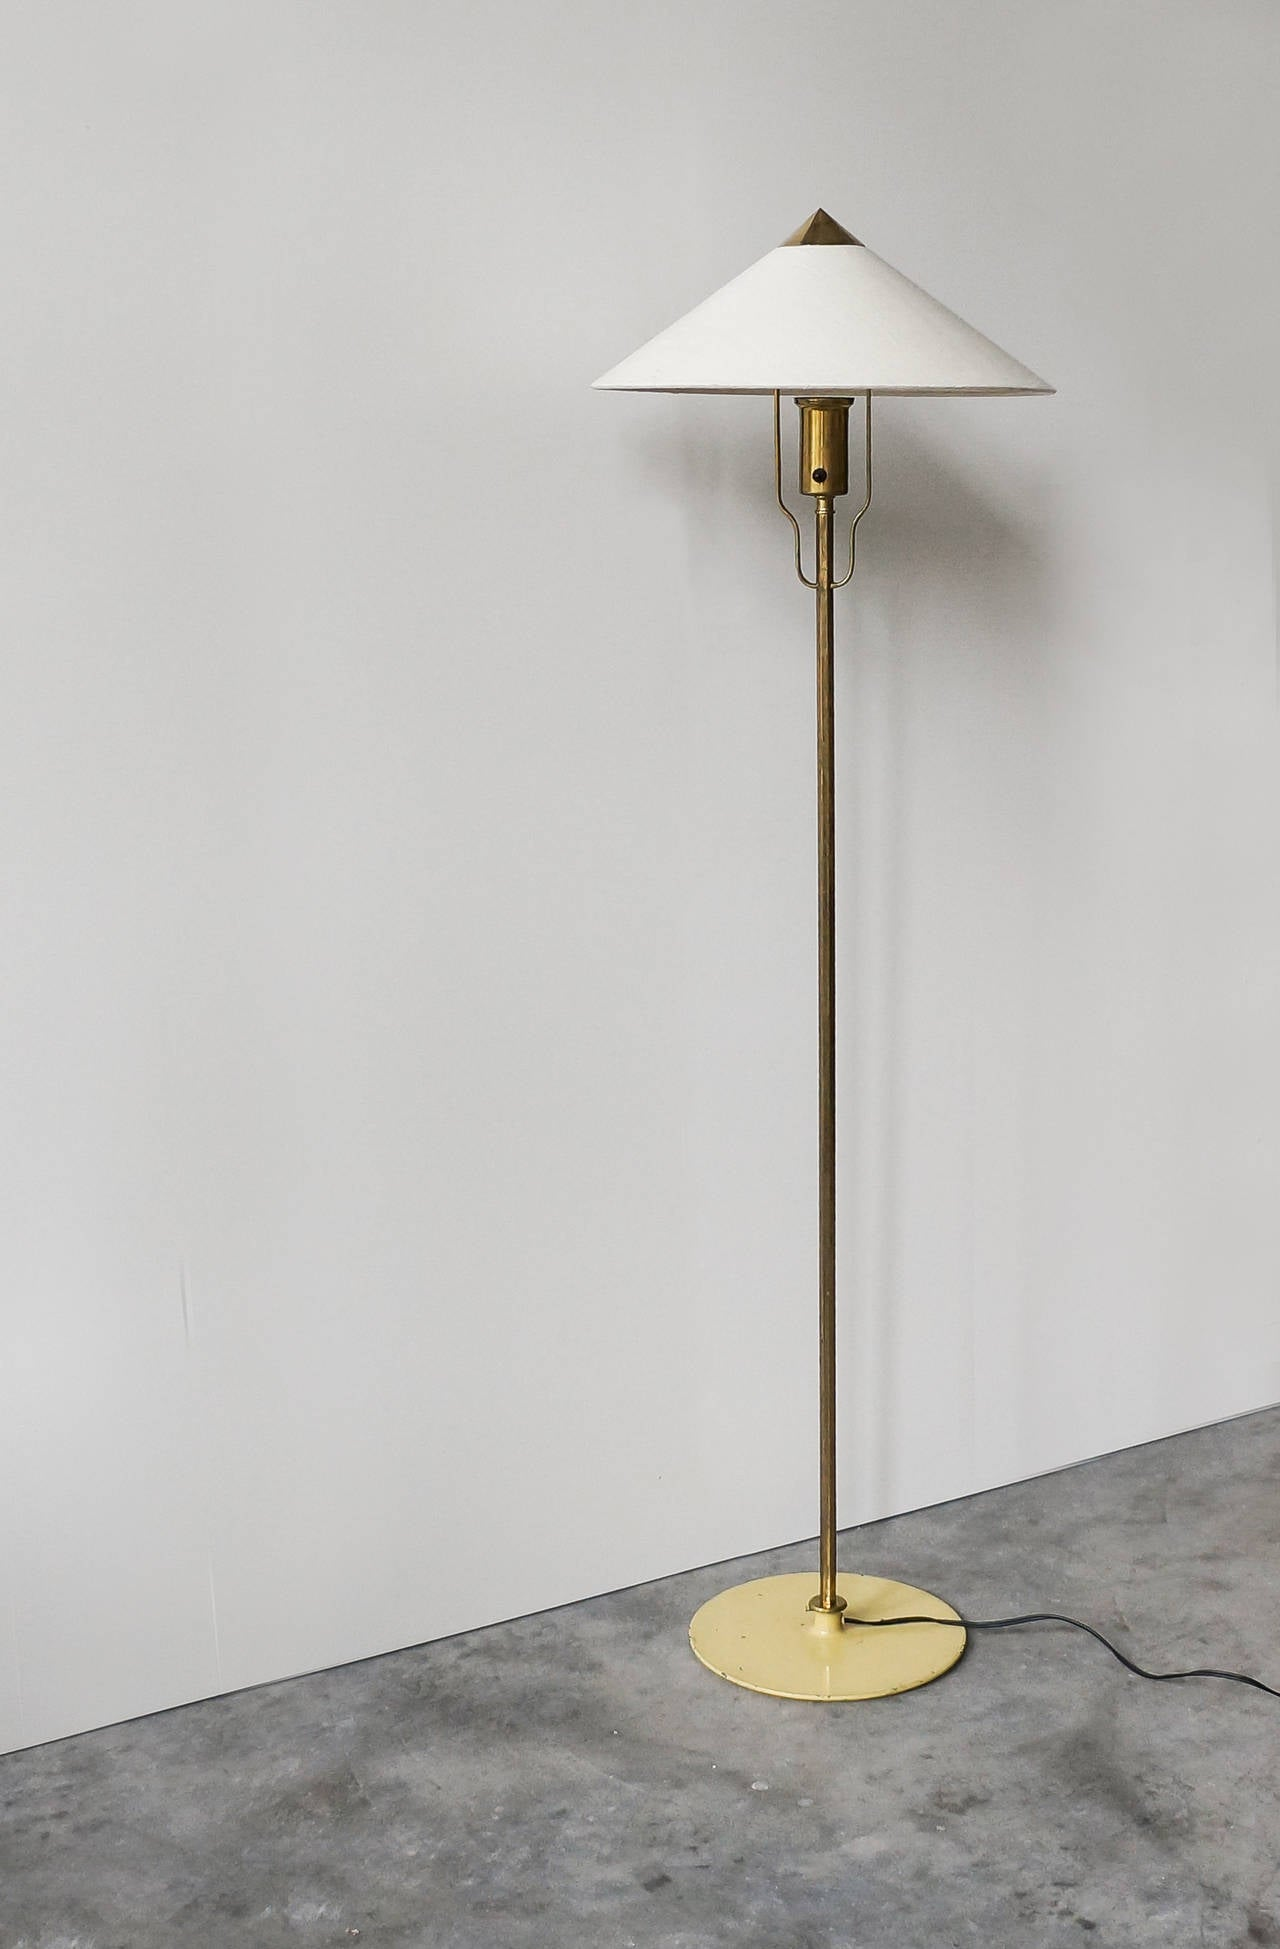 Paavo Tynell floor lamp, model 5762.  Early example by Taito Oy, Finland, late 1940s.  Brass, painted cast iron base, wool fabric shade. Measures: Height circa 142 cm, width 43 cm, depth 43 cm.  Impressed with manufacturer's mark